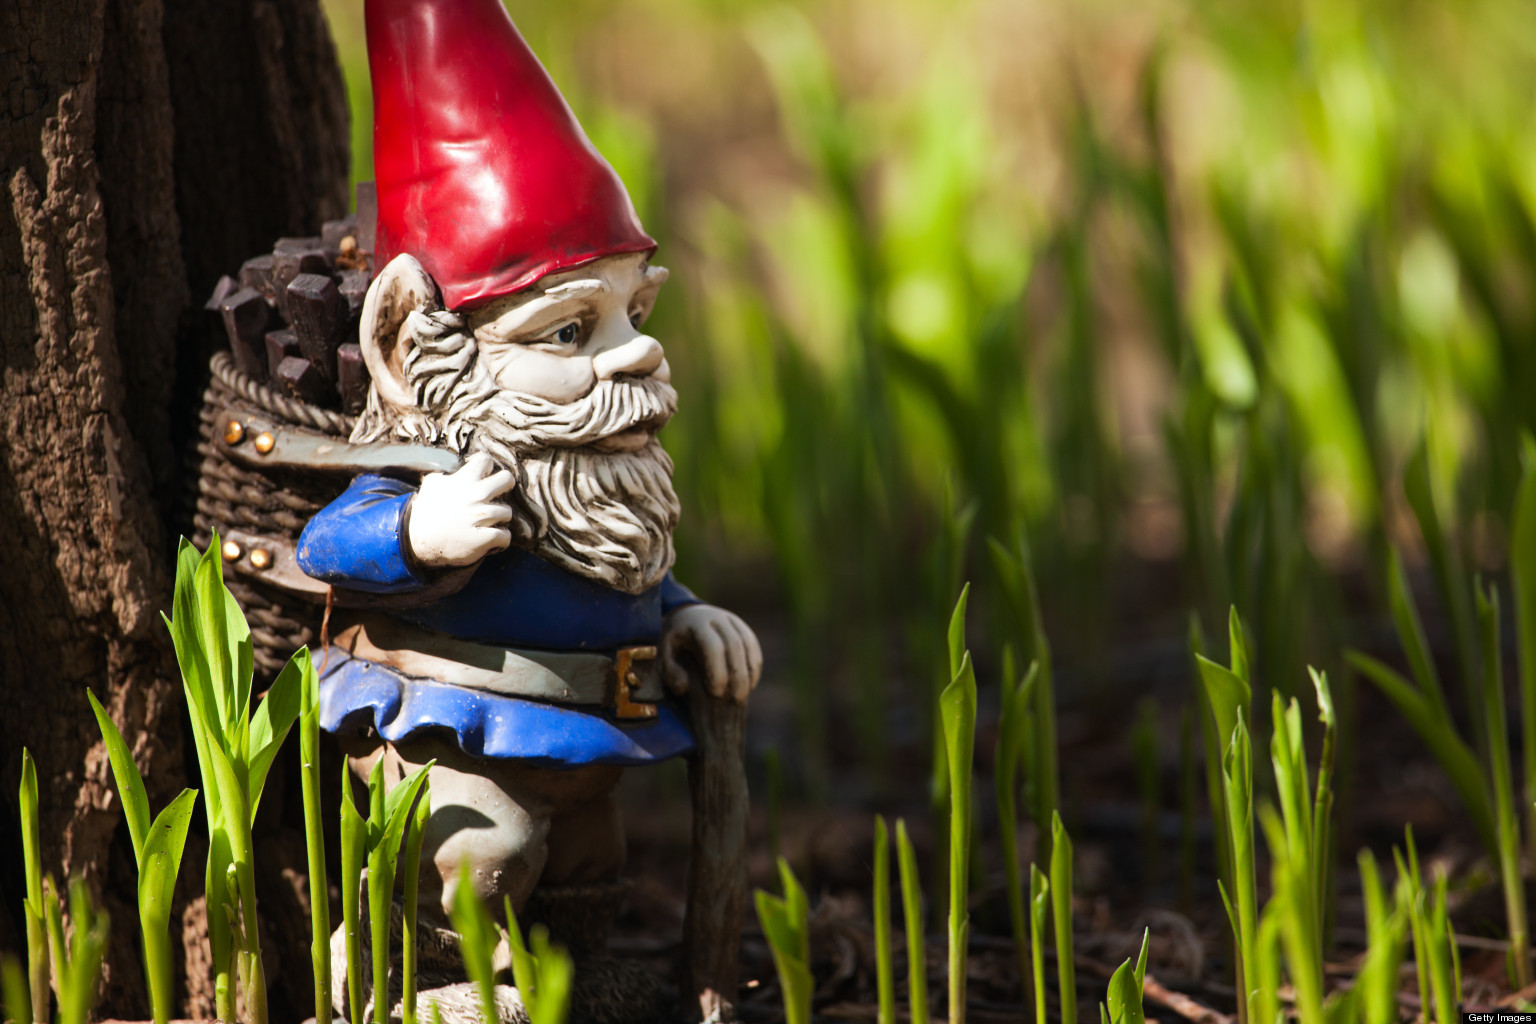 Garden Gnomes Finally Allowed At Chelsea Flower Show